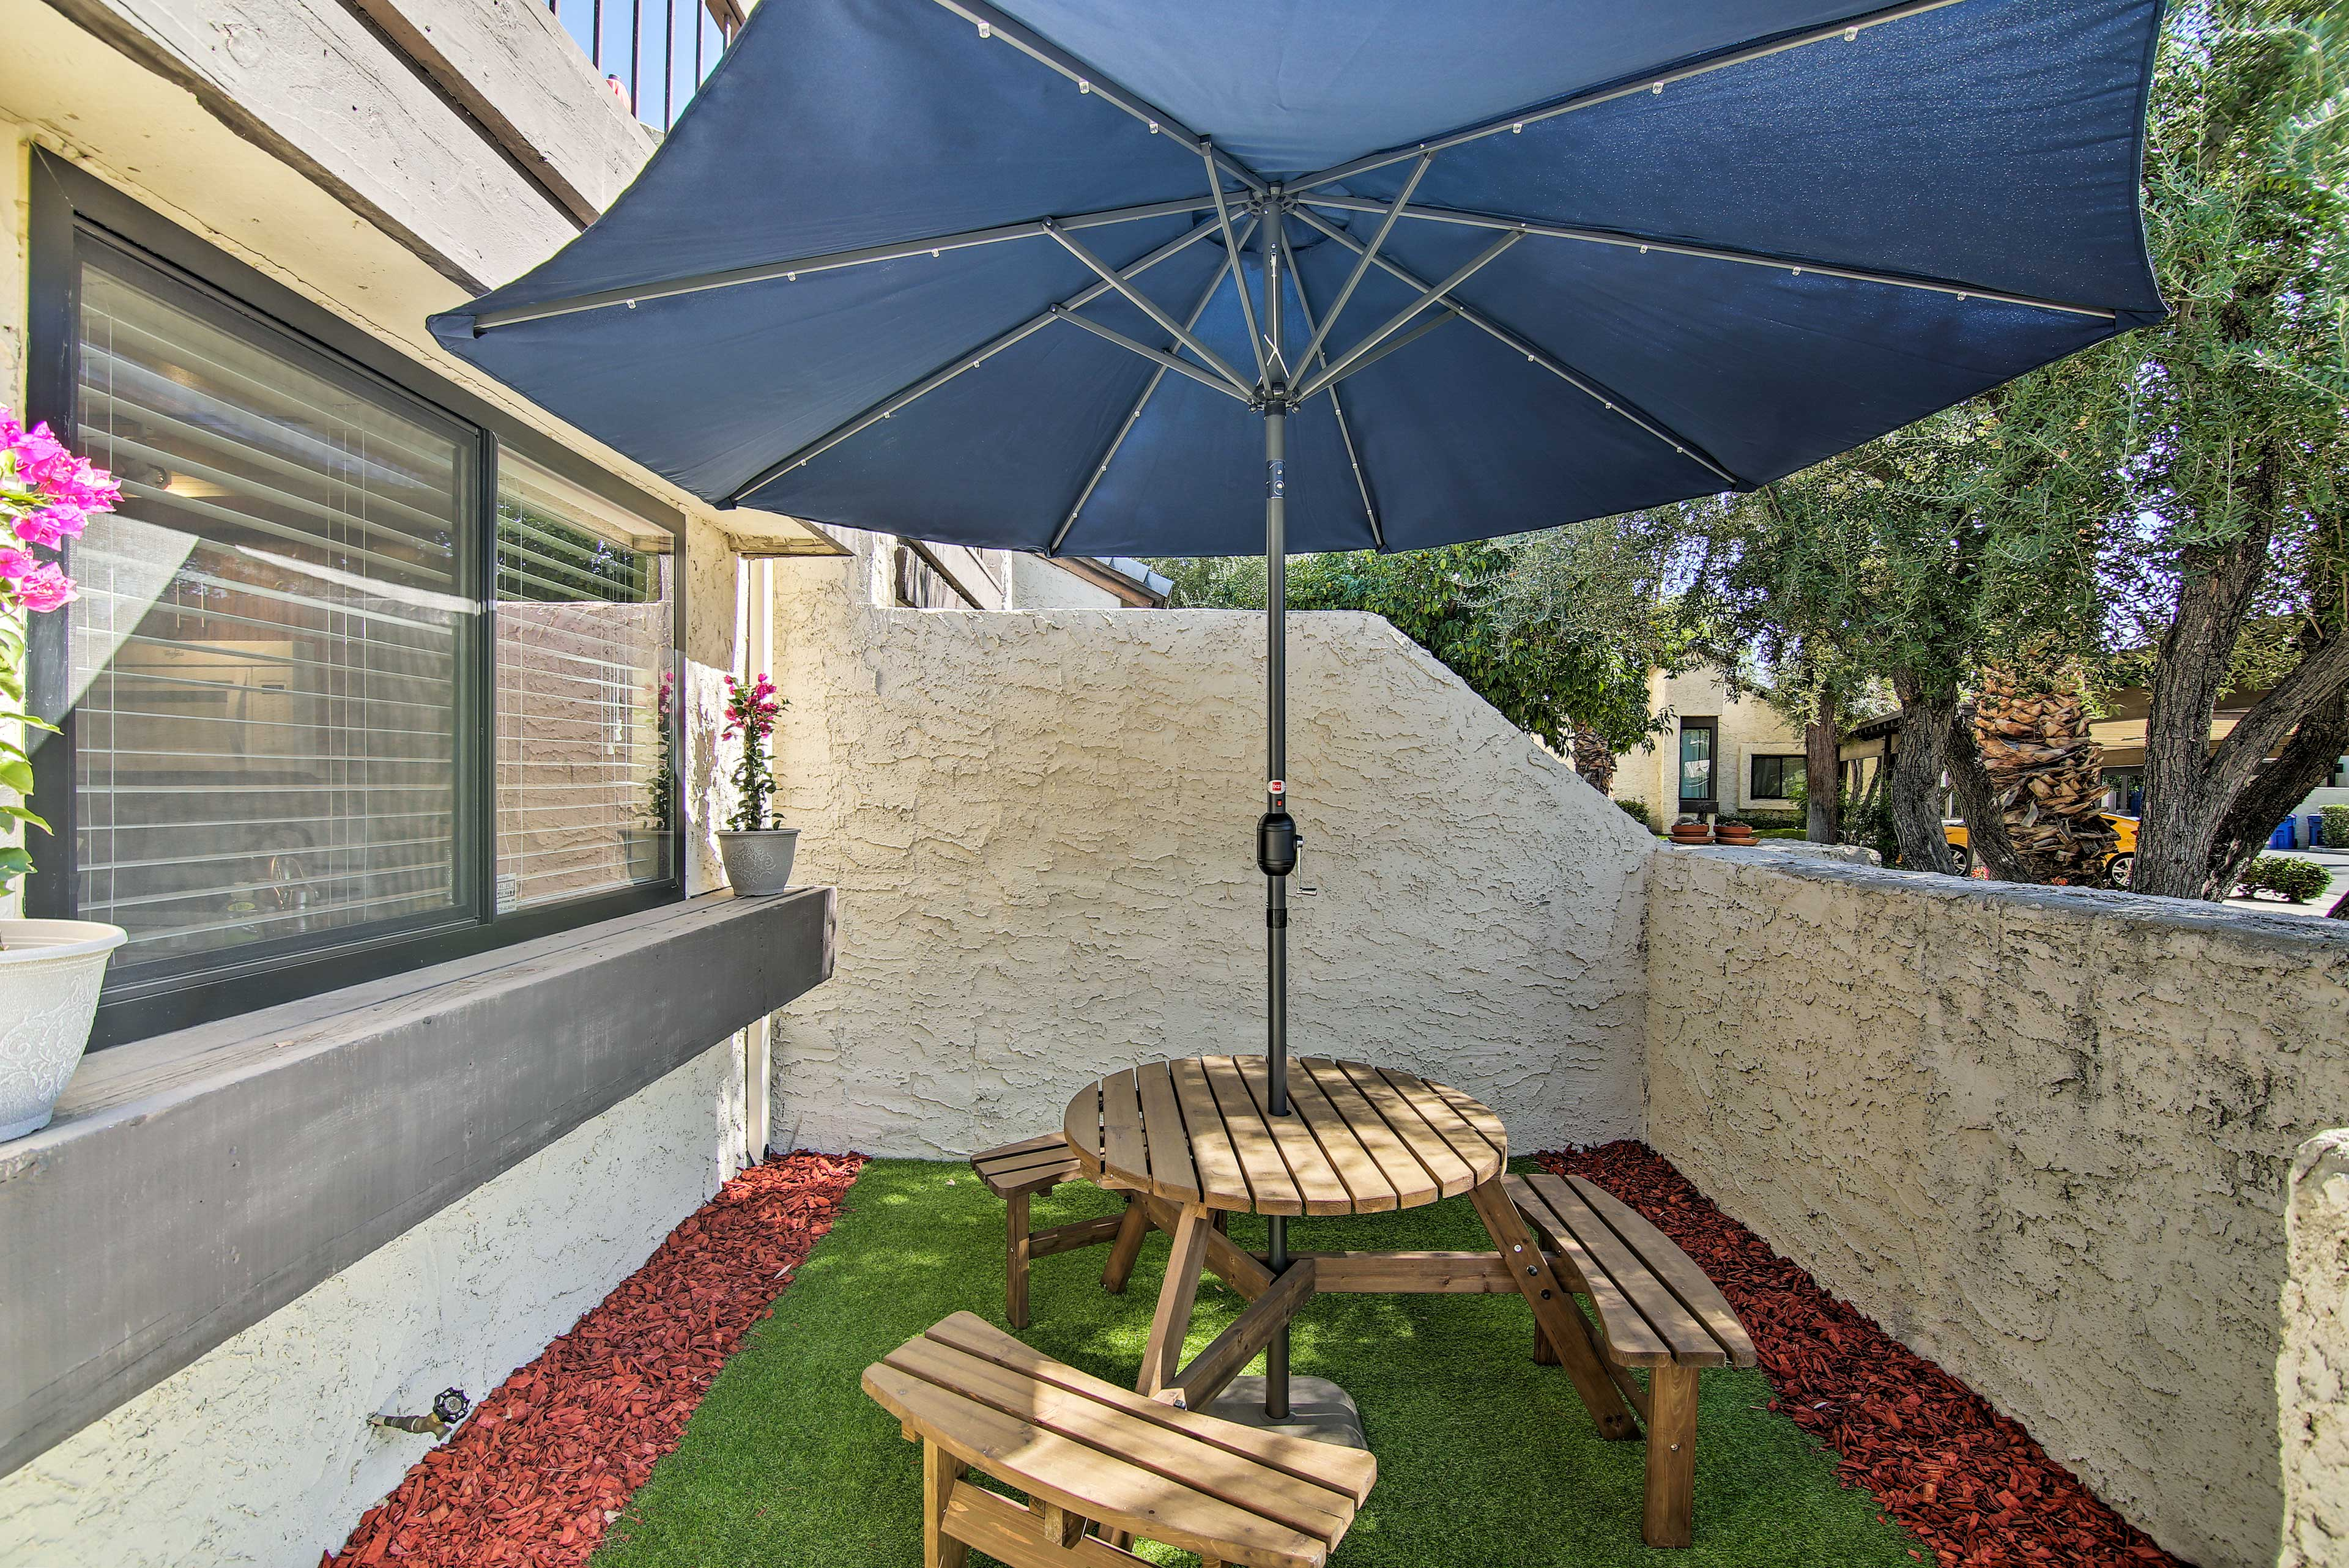 The front courtyard offers a space to enjoy an afternoon picnic.